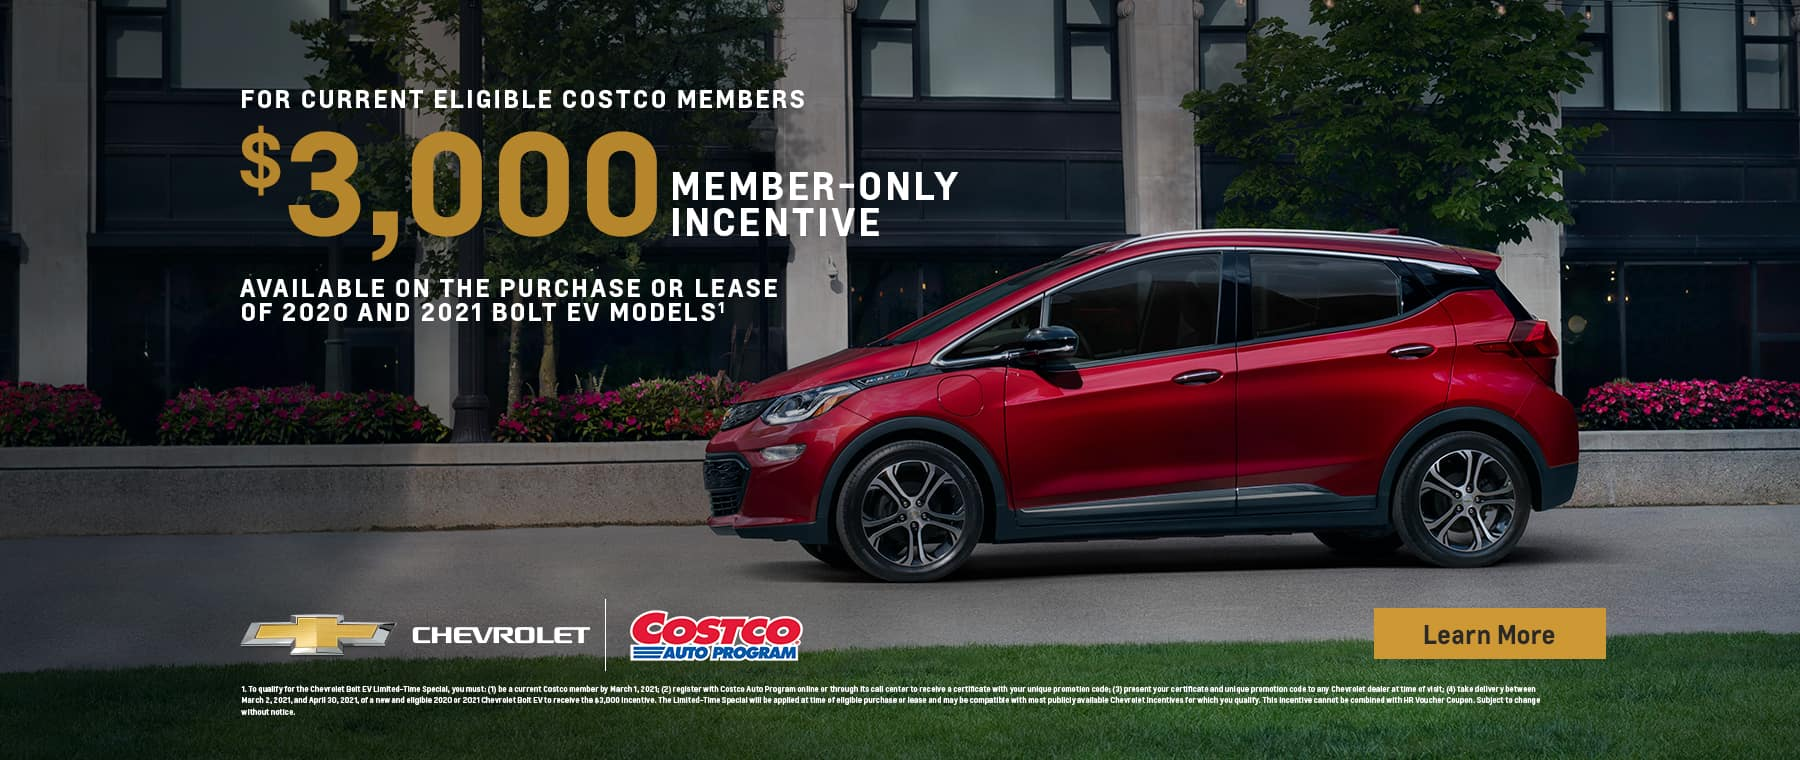 58_MAR_COSTCO 3 000 BOLT EV_1800x760